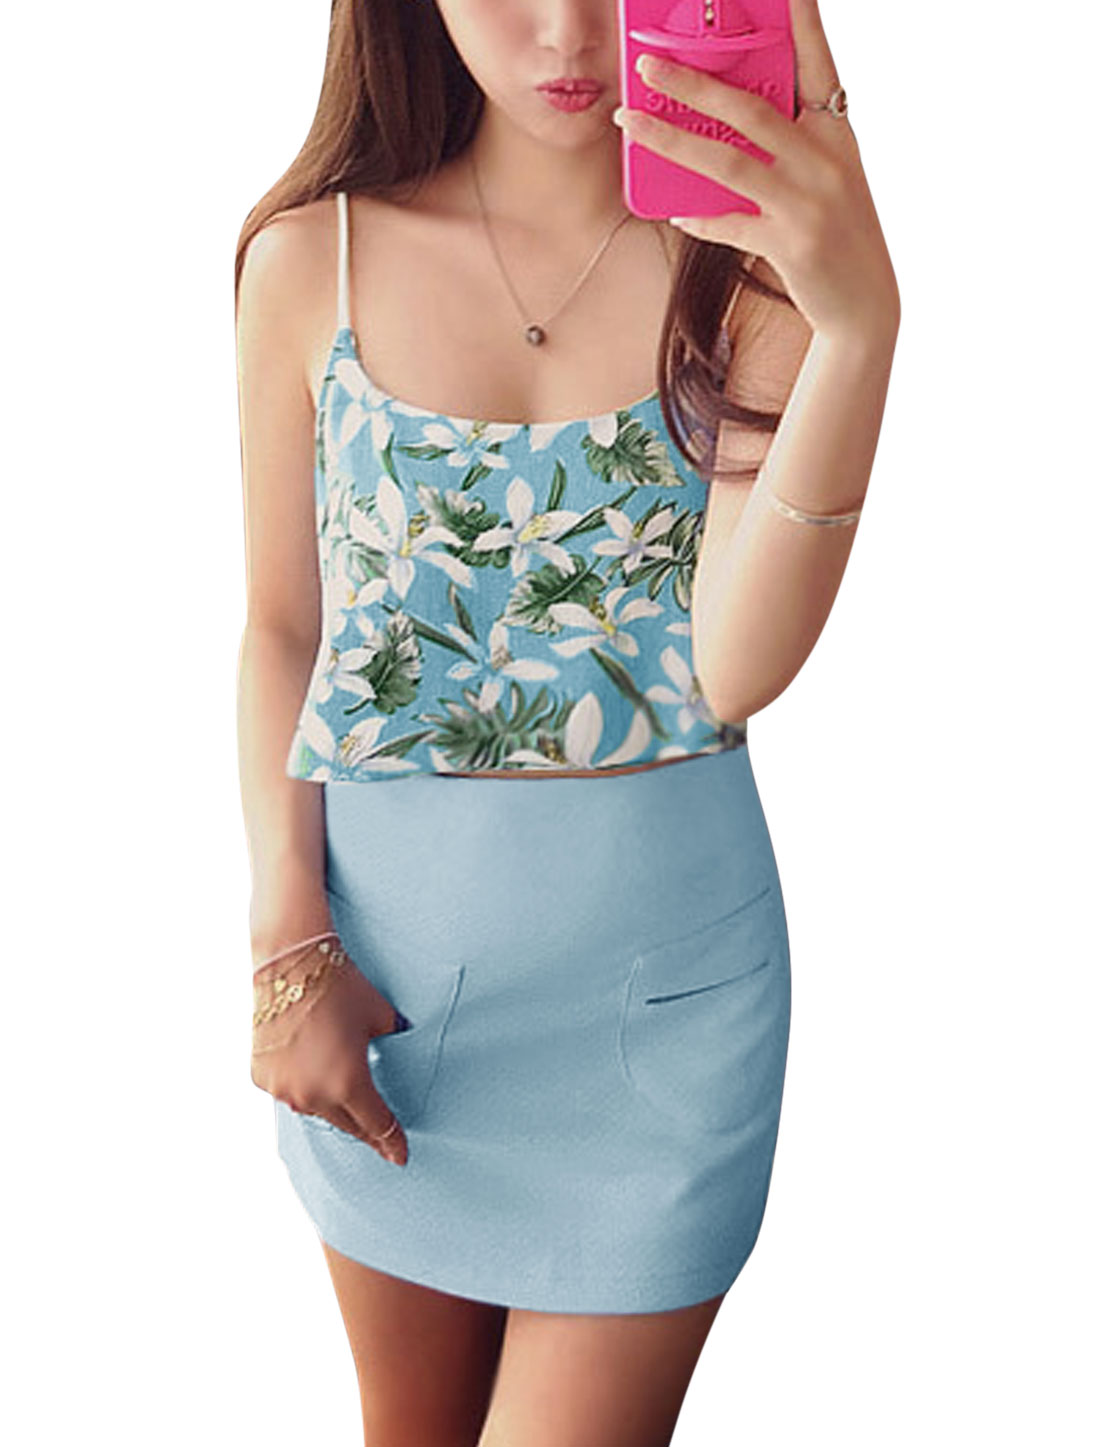 Woman Floral Prints Crop Top w Slim Fit Straight Skirt Set Light Blue XS